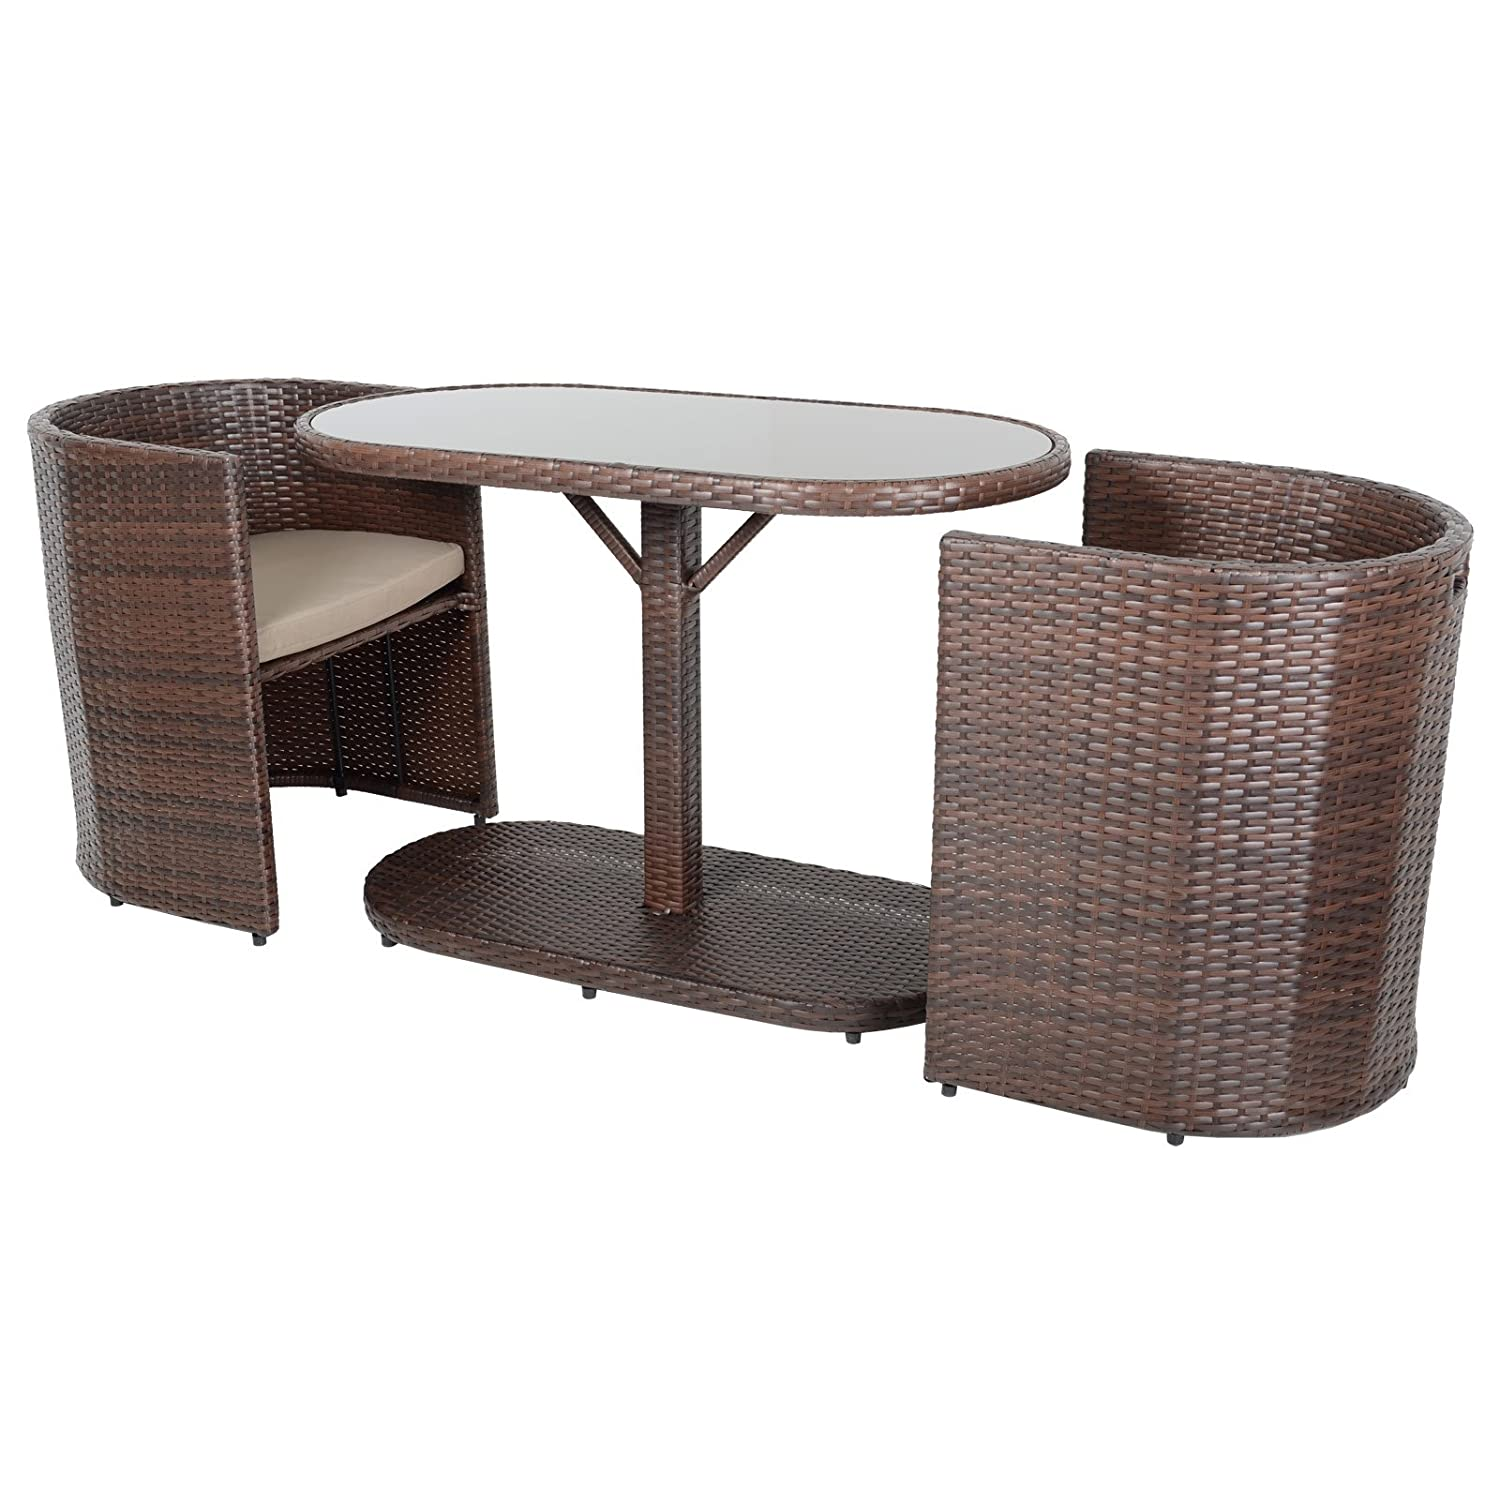 garden chairs you sofa and can aldi rattan news chair miss furniture to this table range afford